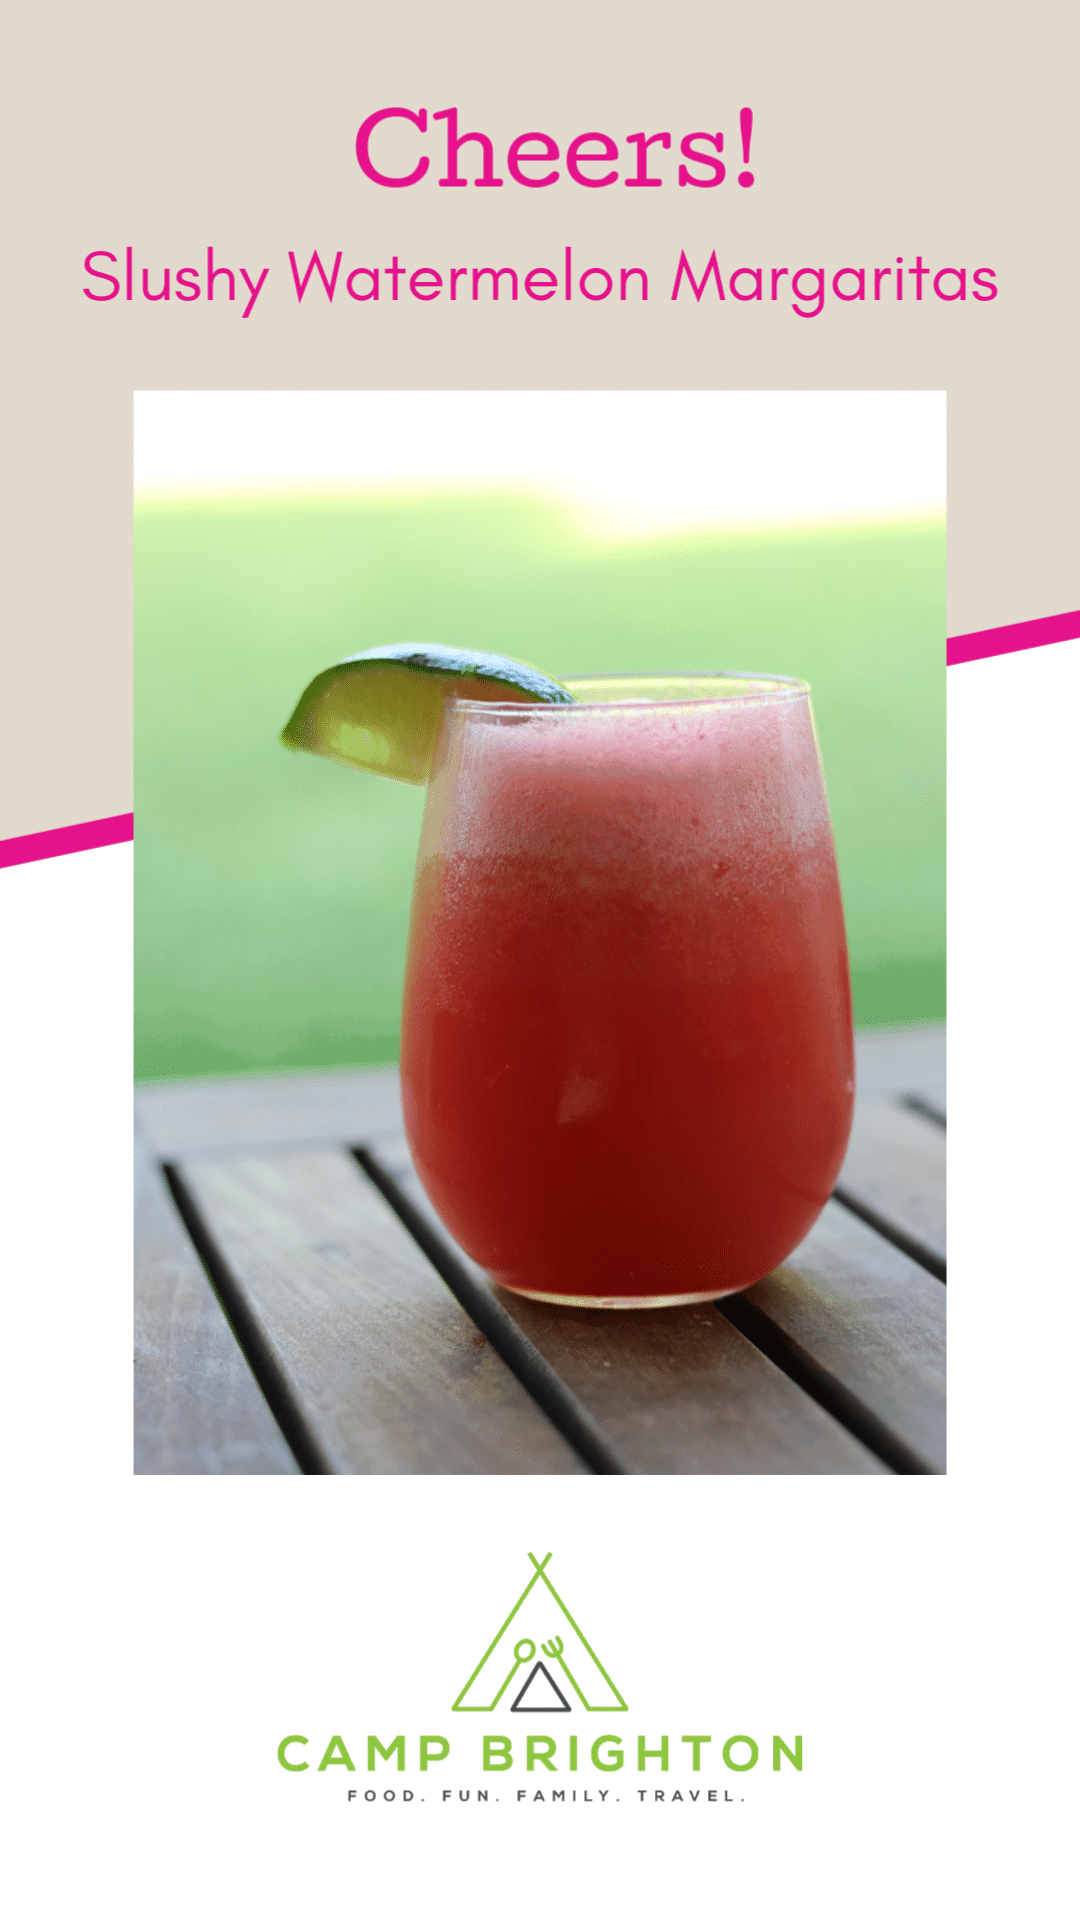 Cheers! Slushy Watermelon Margarita!